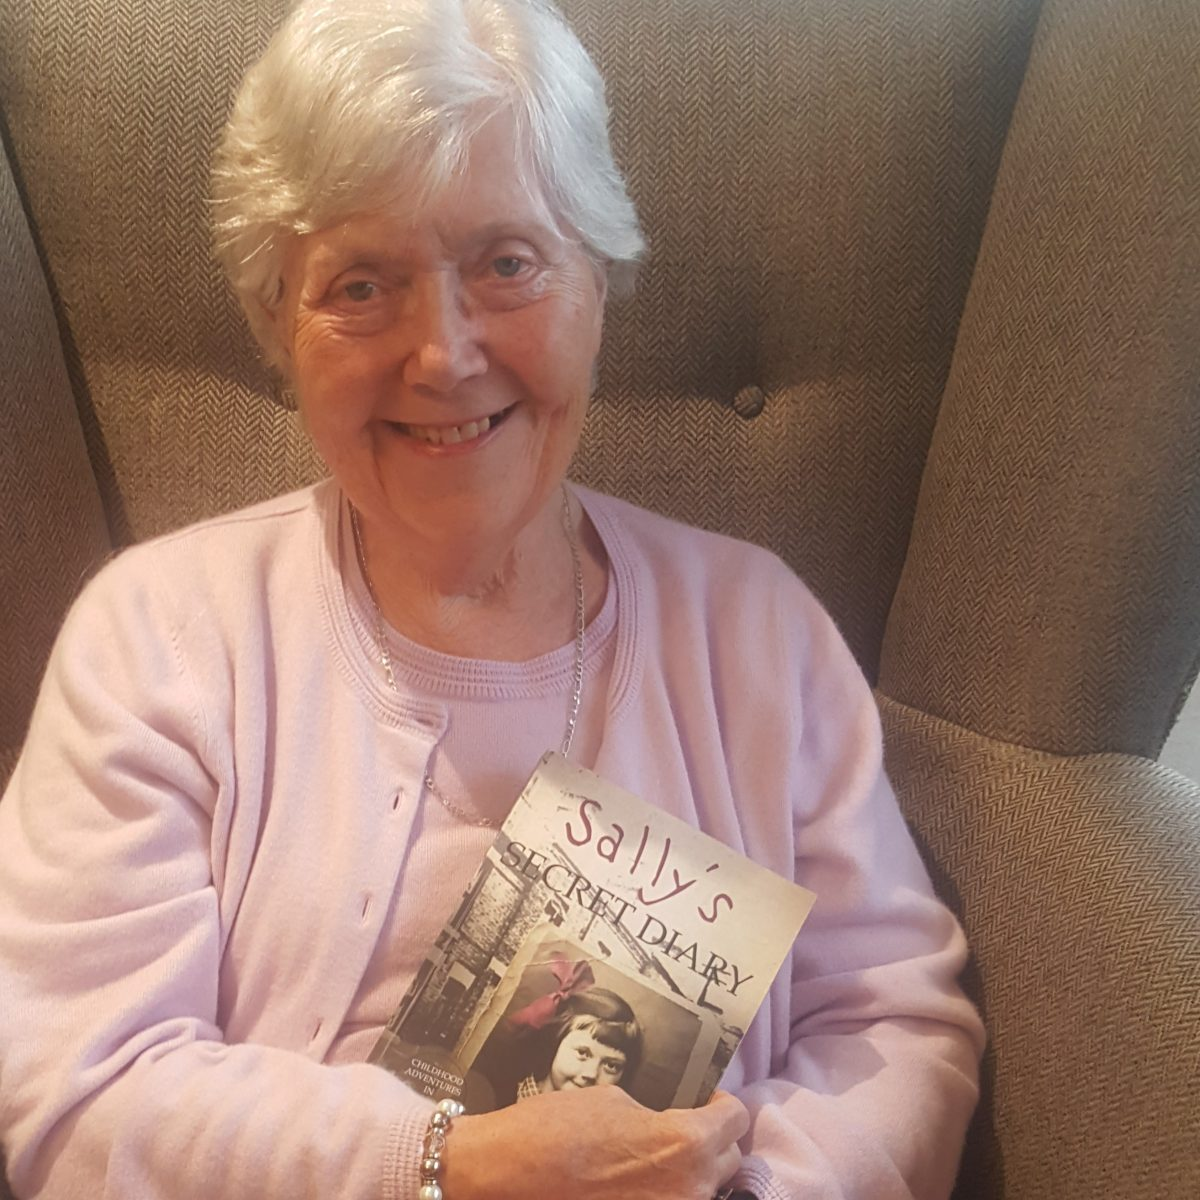 Kiwi House Resident Author Launches Book Club